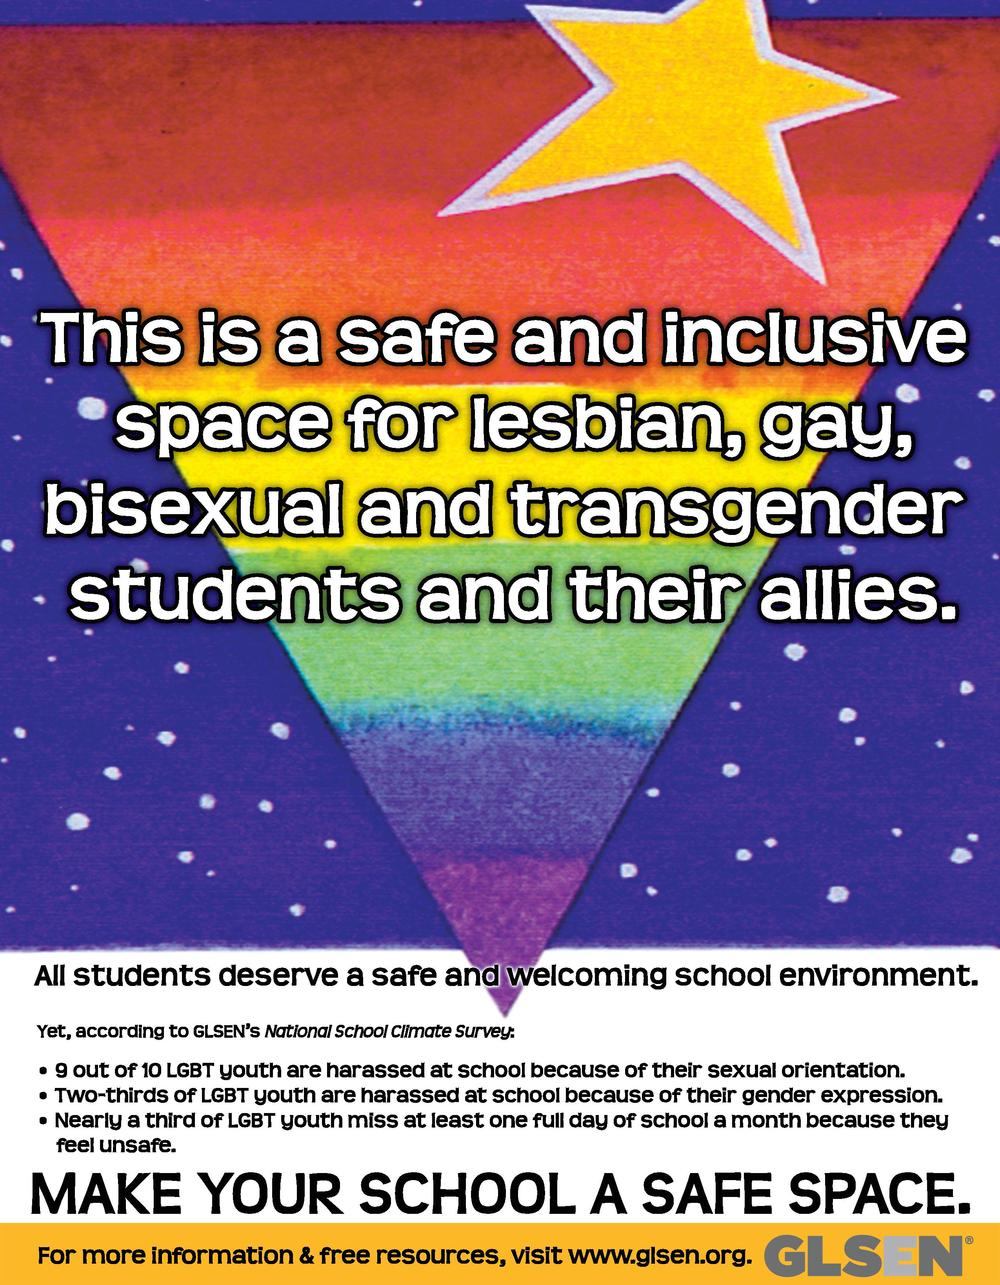 This is a safe and inclusive space